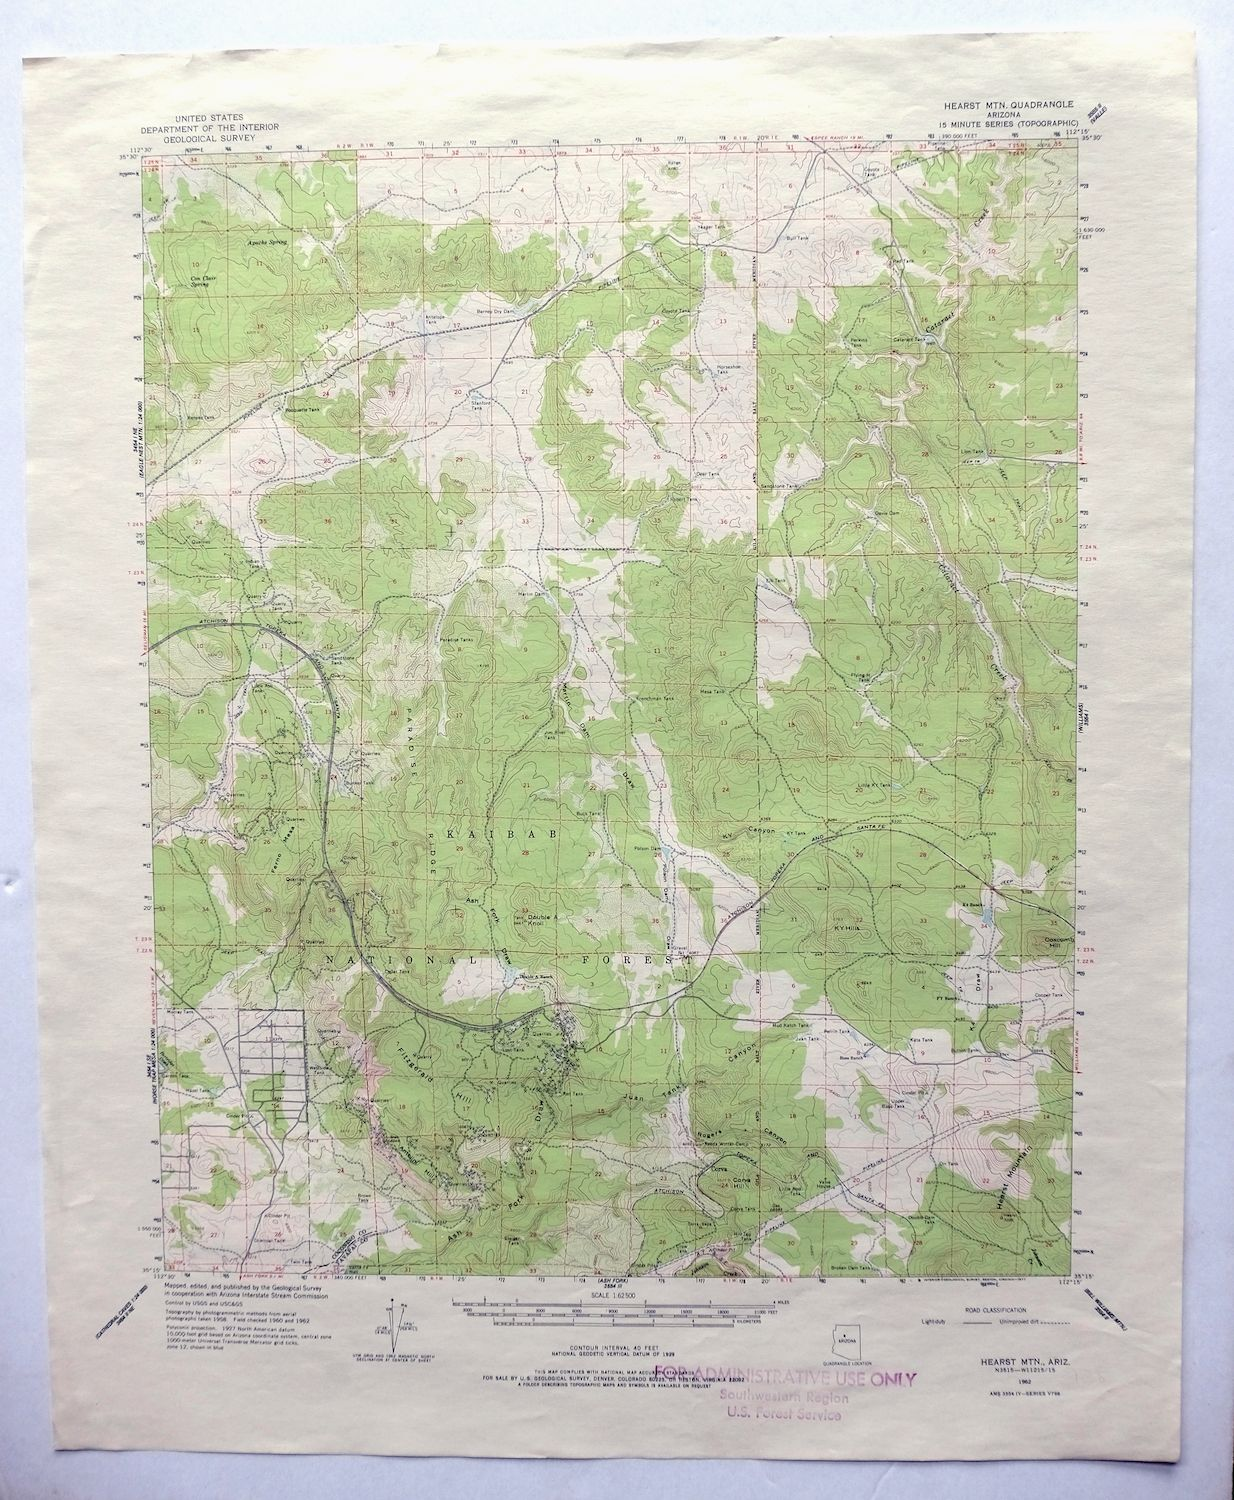 Details about Hearst Mountain Arizona Vintage USGS Topo Map 1962 Williams  Topographical